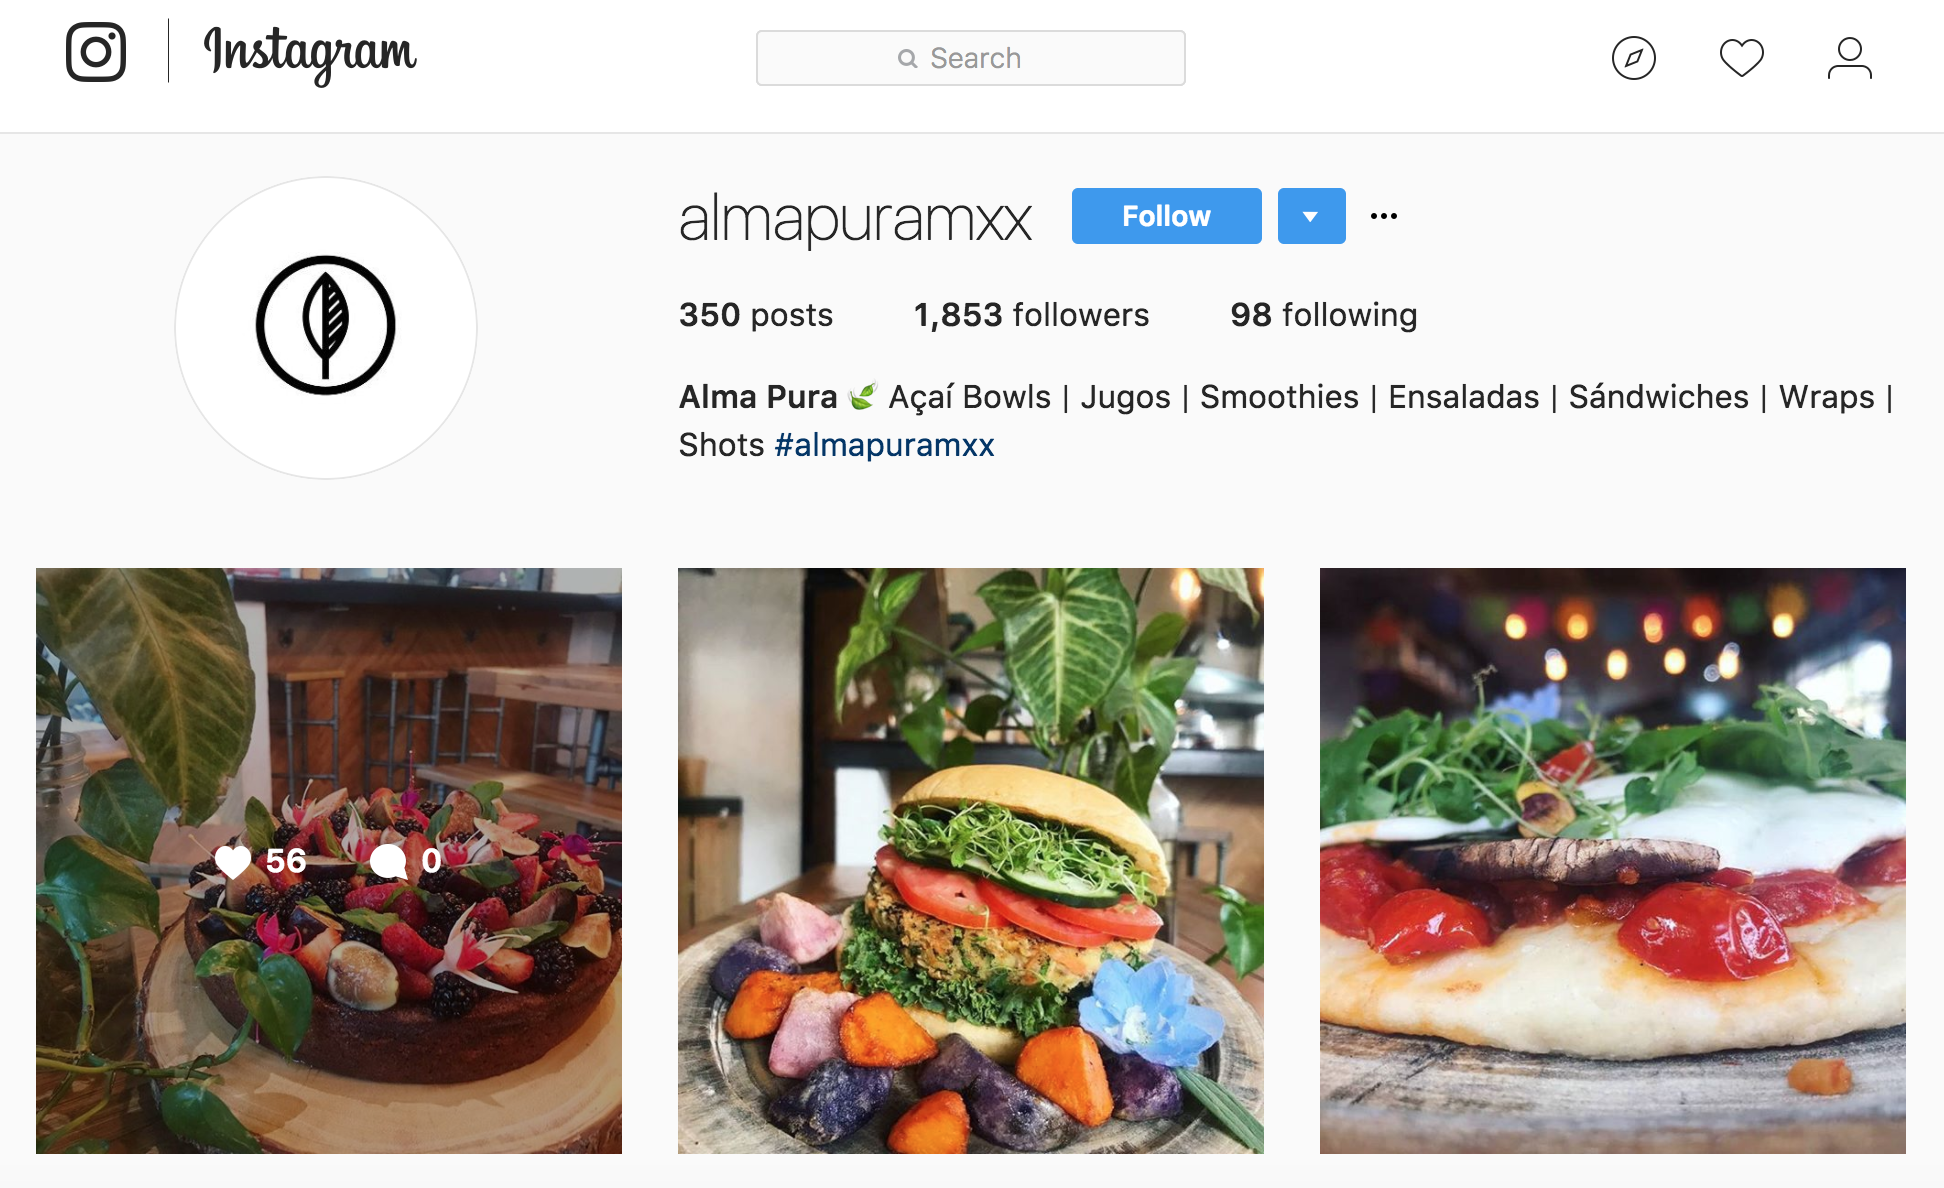 Alma Pura - Doesn't this look super delicious?! UGH - i'm hungry now, lol. [click the photo to go straight to their IG]